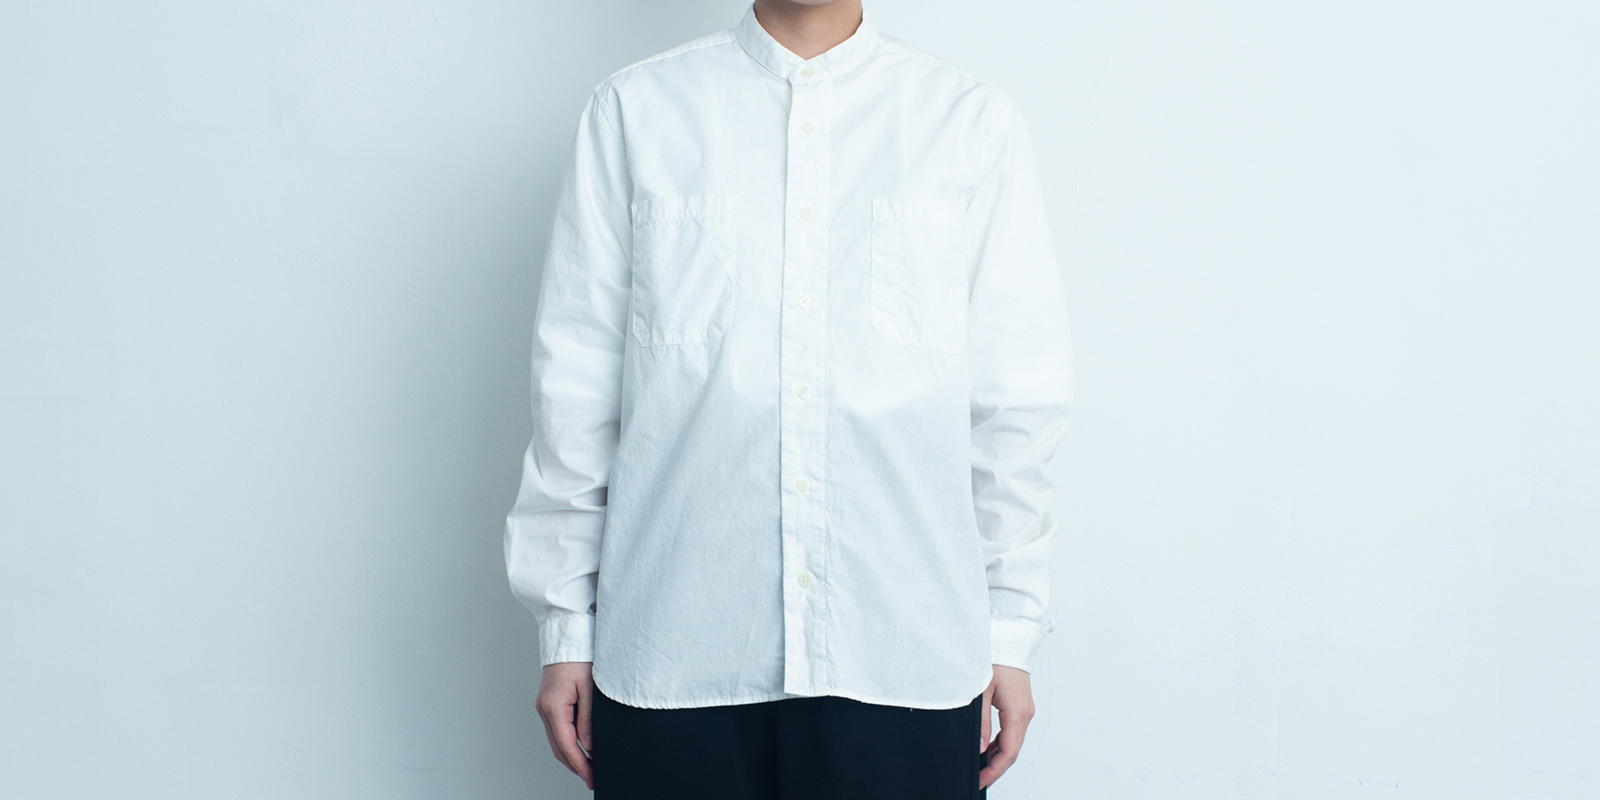 d 206 STAND SHIRT・WHITE・XL